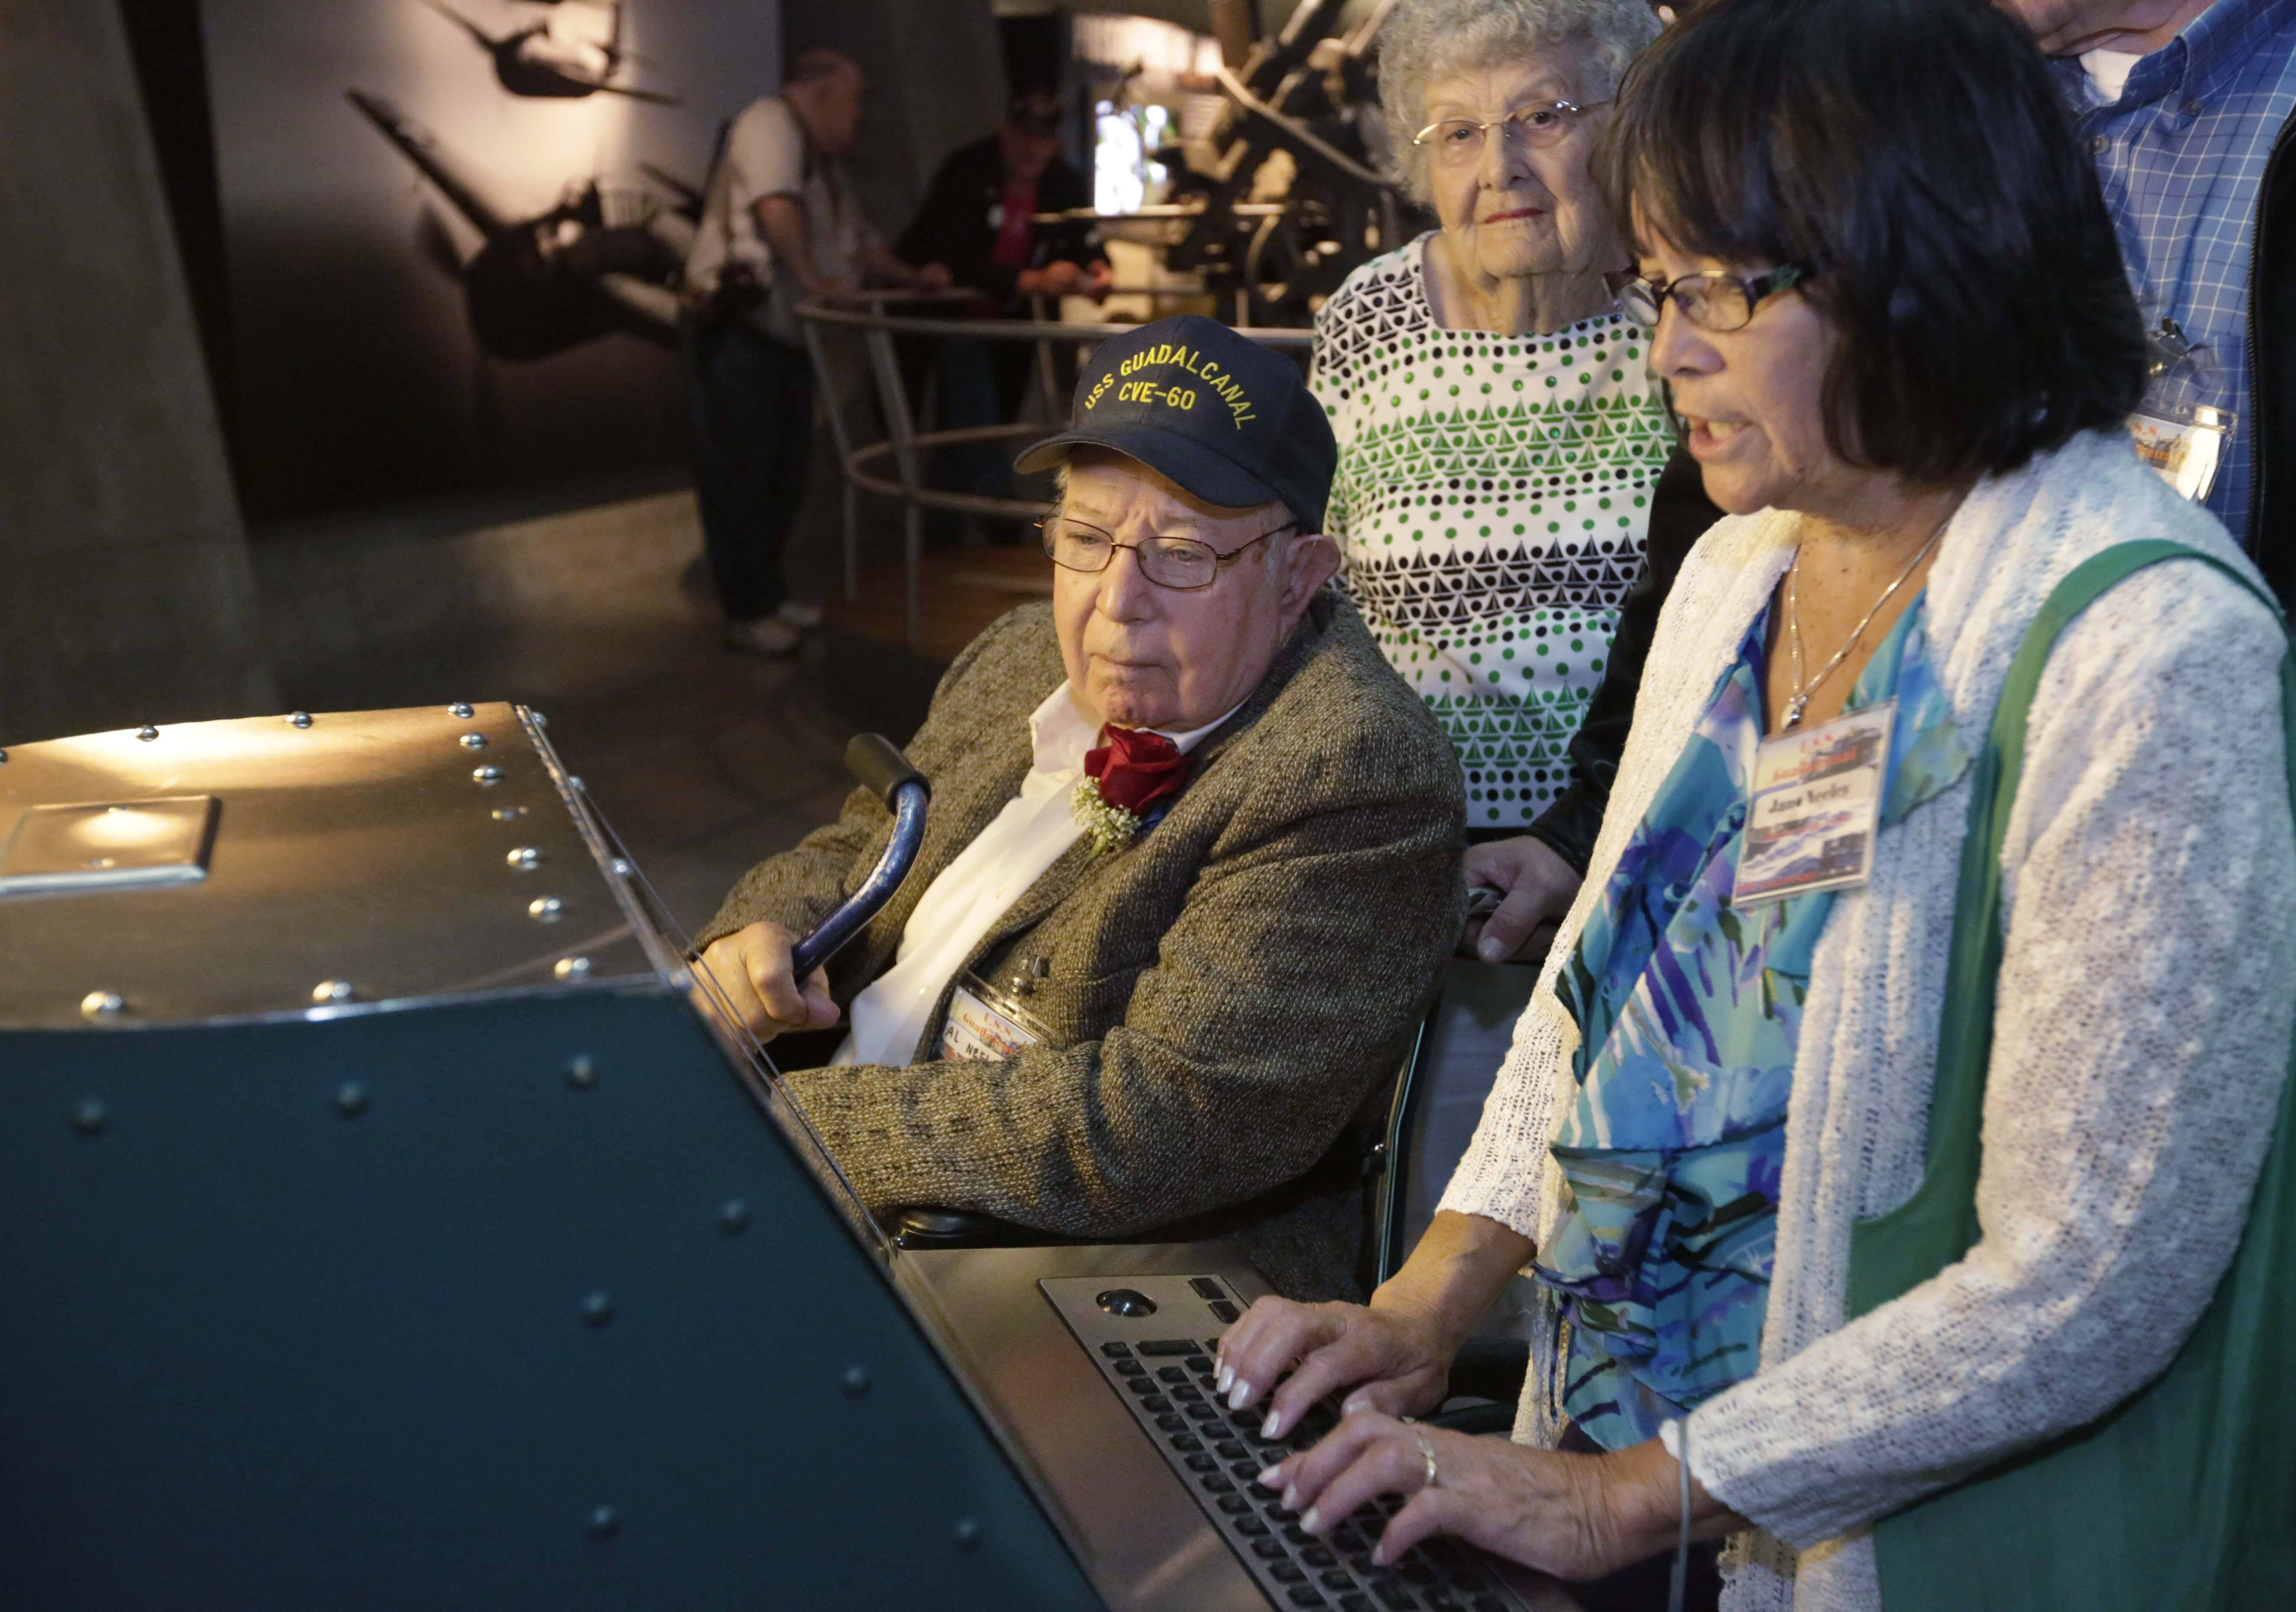 World War II veteran Al Neeley of Puyallup, Wash., watches as his daughter-in-law, Jan Neeley, types on an Enigma code machine Wednesday at the interactive exhibits by the captured U-505 German submarine on display at Chicago's Museum of Science and Industry.